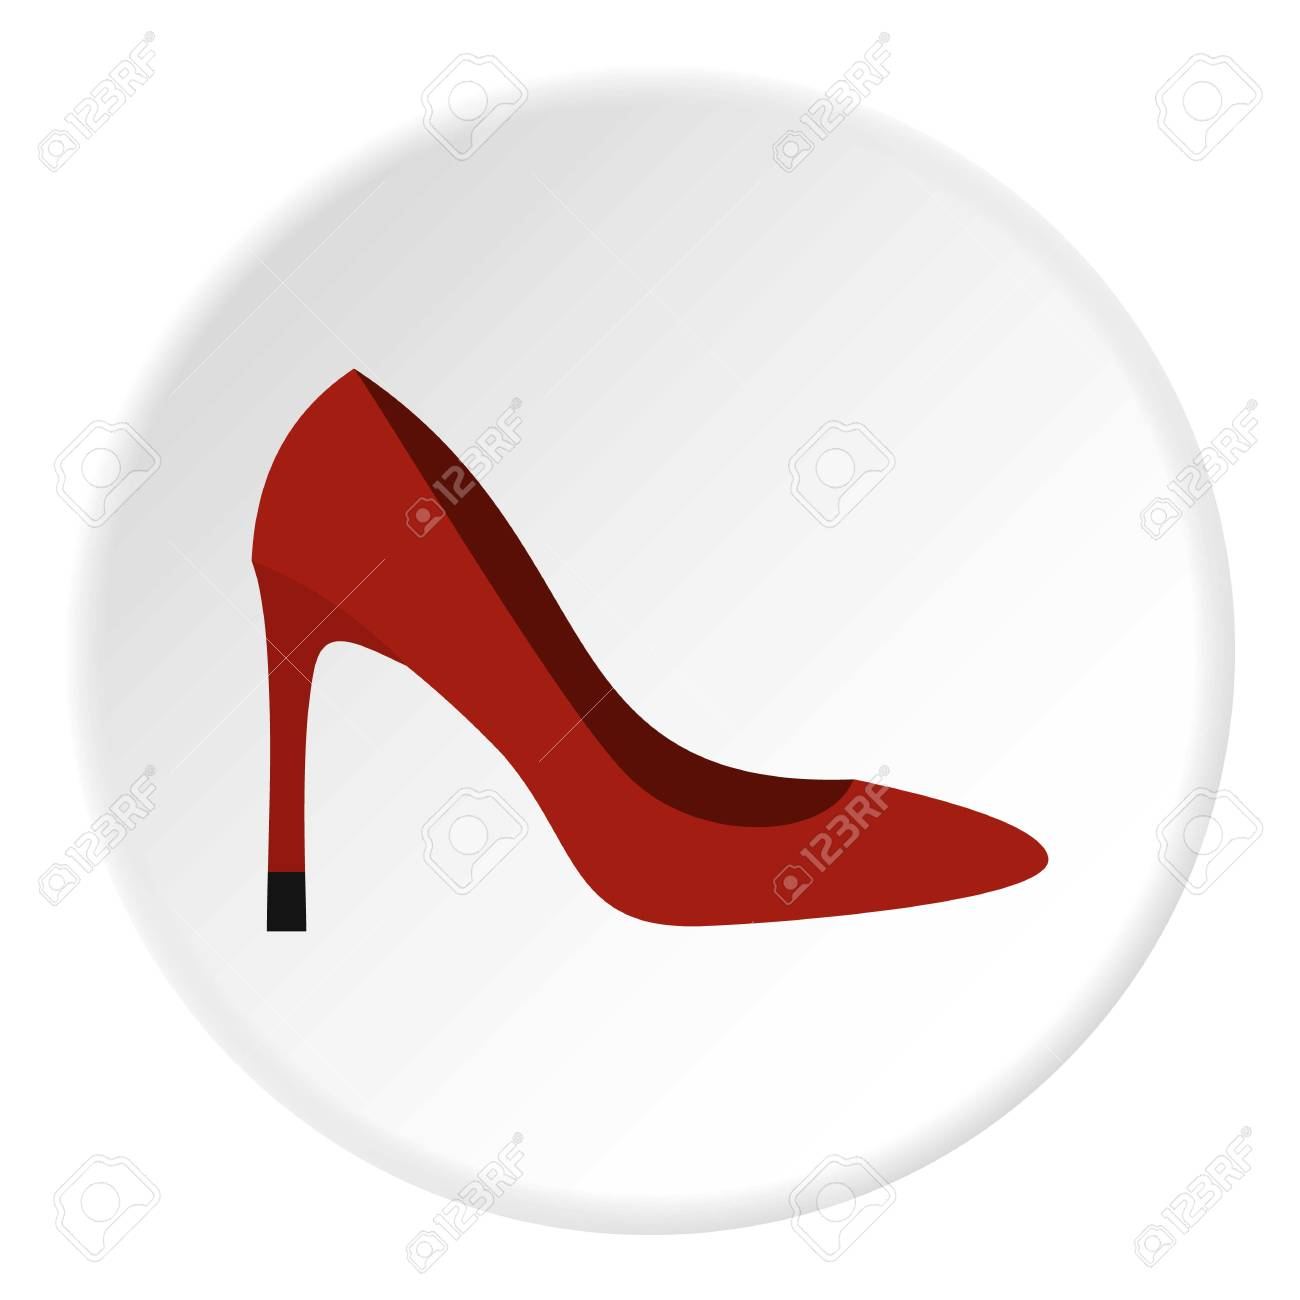 shoe icon circle royalty free cliparts vectors and stock rh 123rf com shoe print vector shoelace vector